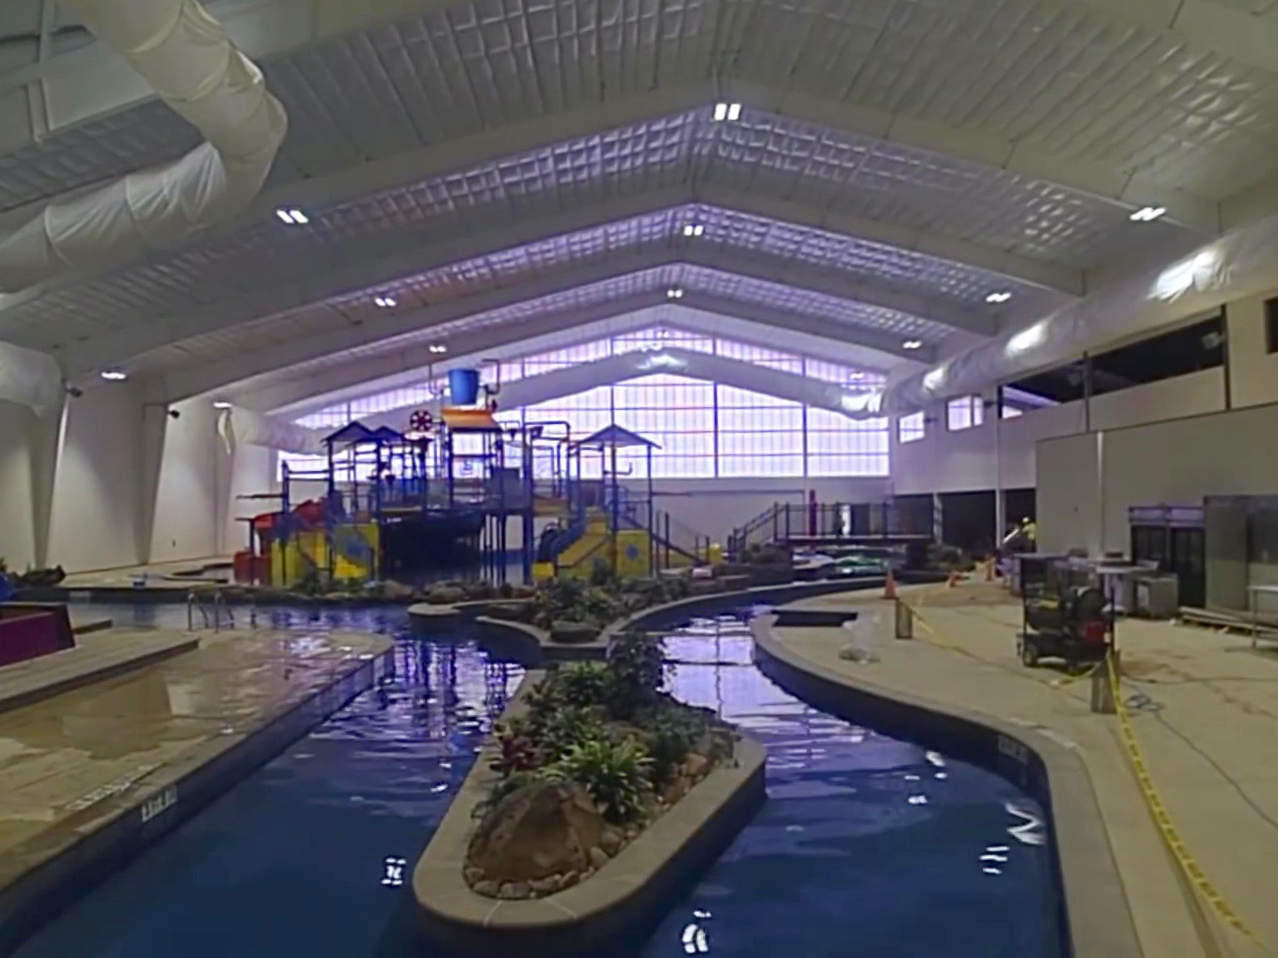 Otoe-Missouria Tribe prepares for February debut of indoor water park